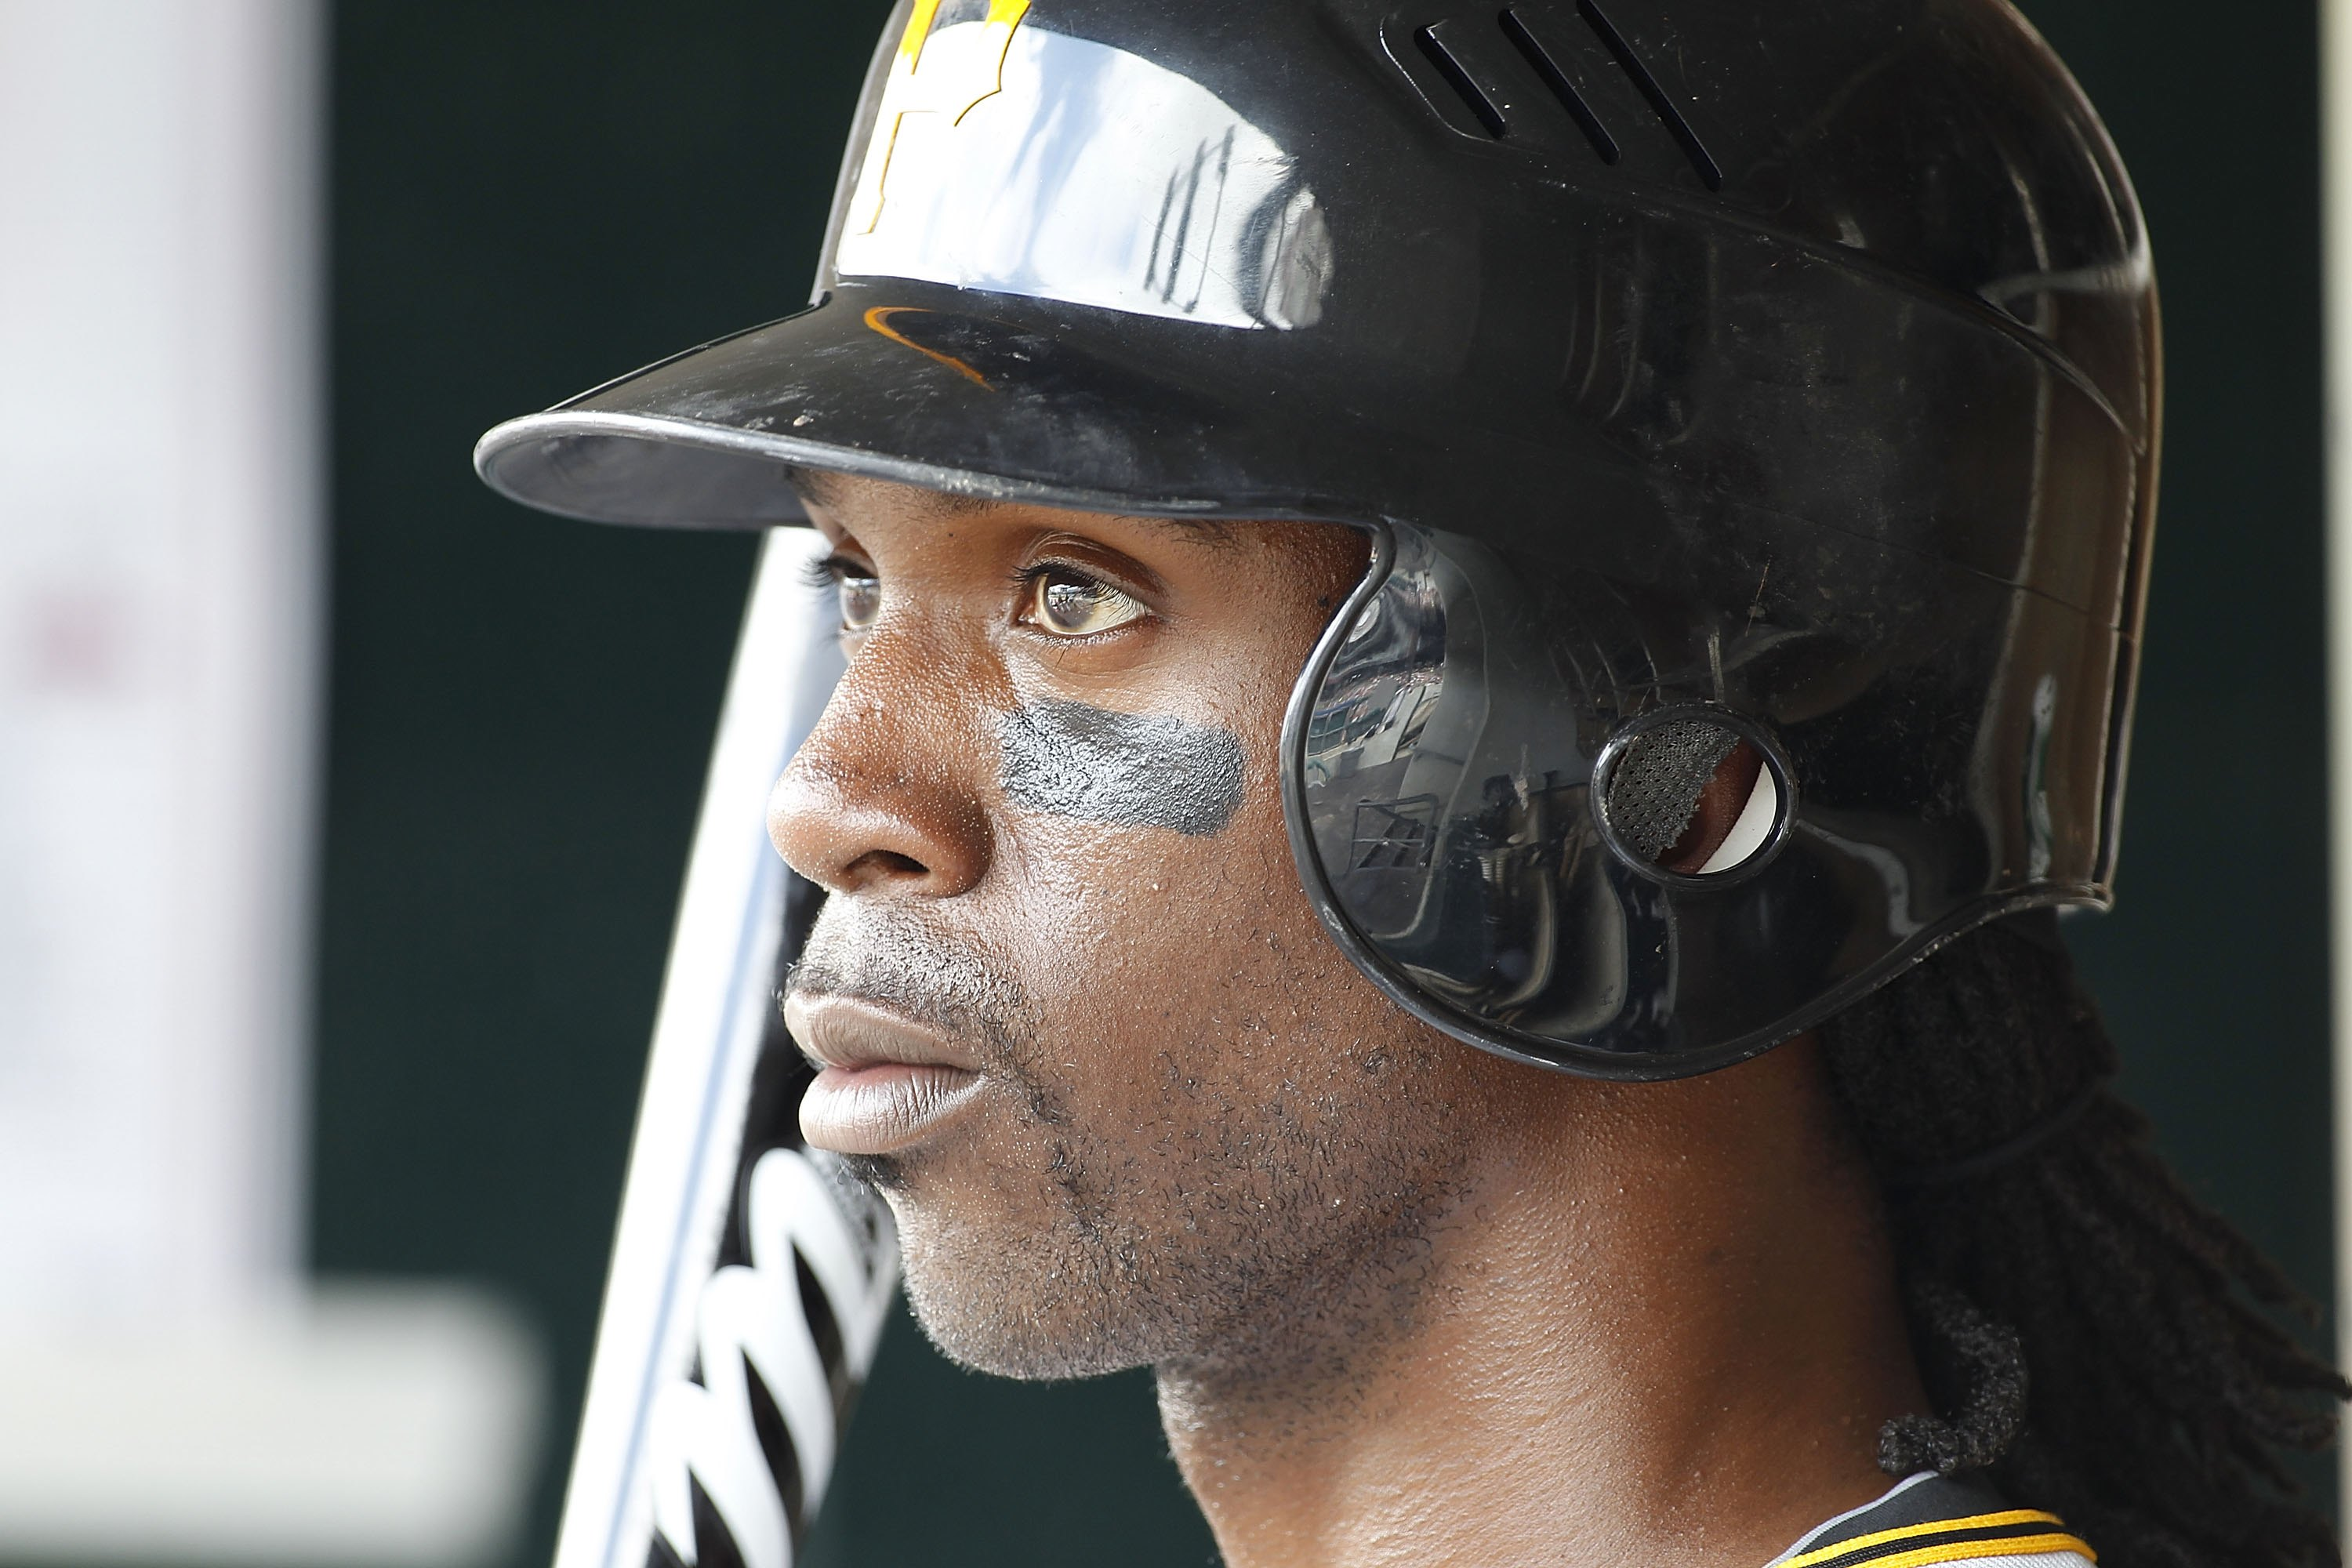 DETROIT - JUNE 13:  Andrew McCutchen #22 of the Pittsburgh Pirates looks on during the sixth inning against the Detroit Tigers during the game on June 12, 2010 at Comerica Park in Detroit, Michigan. The Tigers defeated the Pirates 4-3.  (Photo by Leon Hal